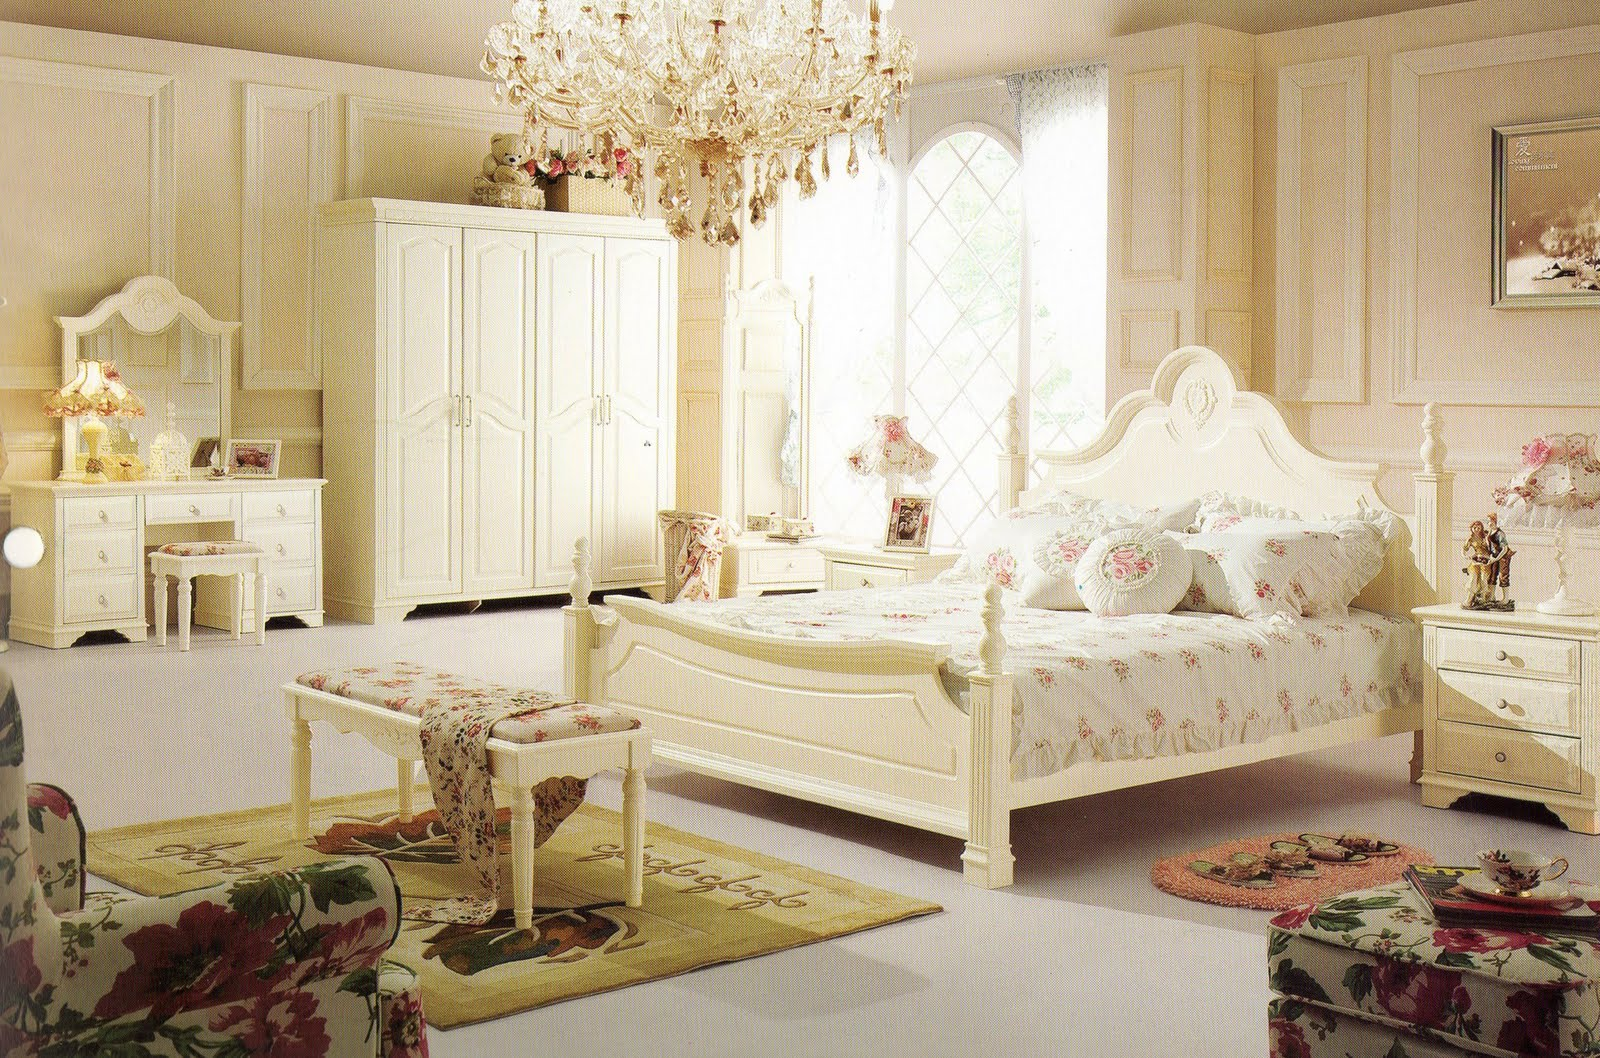 new arrival of our beautiful and elegant french style bedroom suites